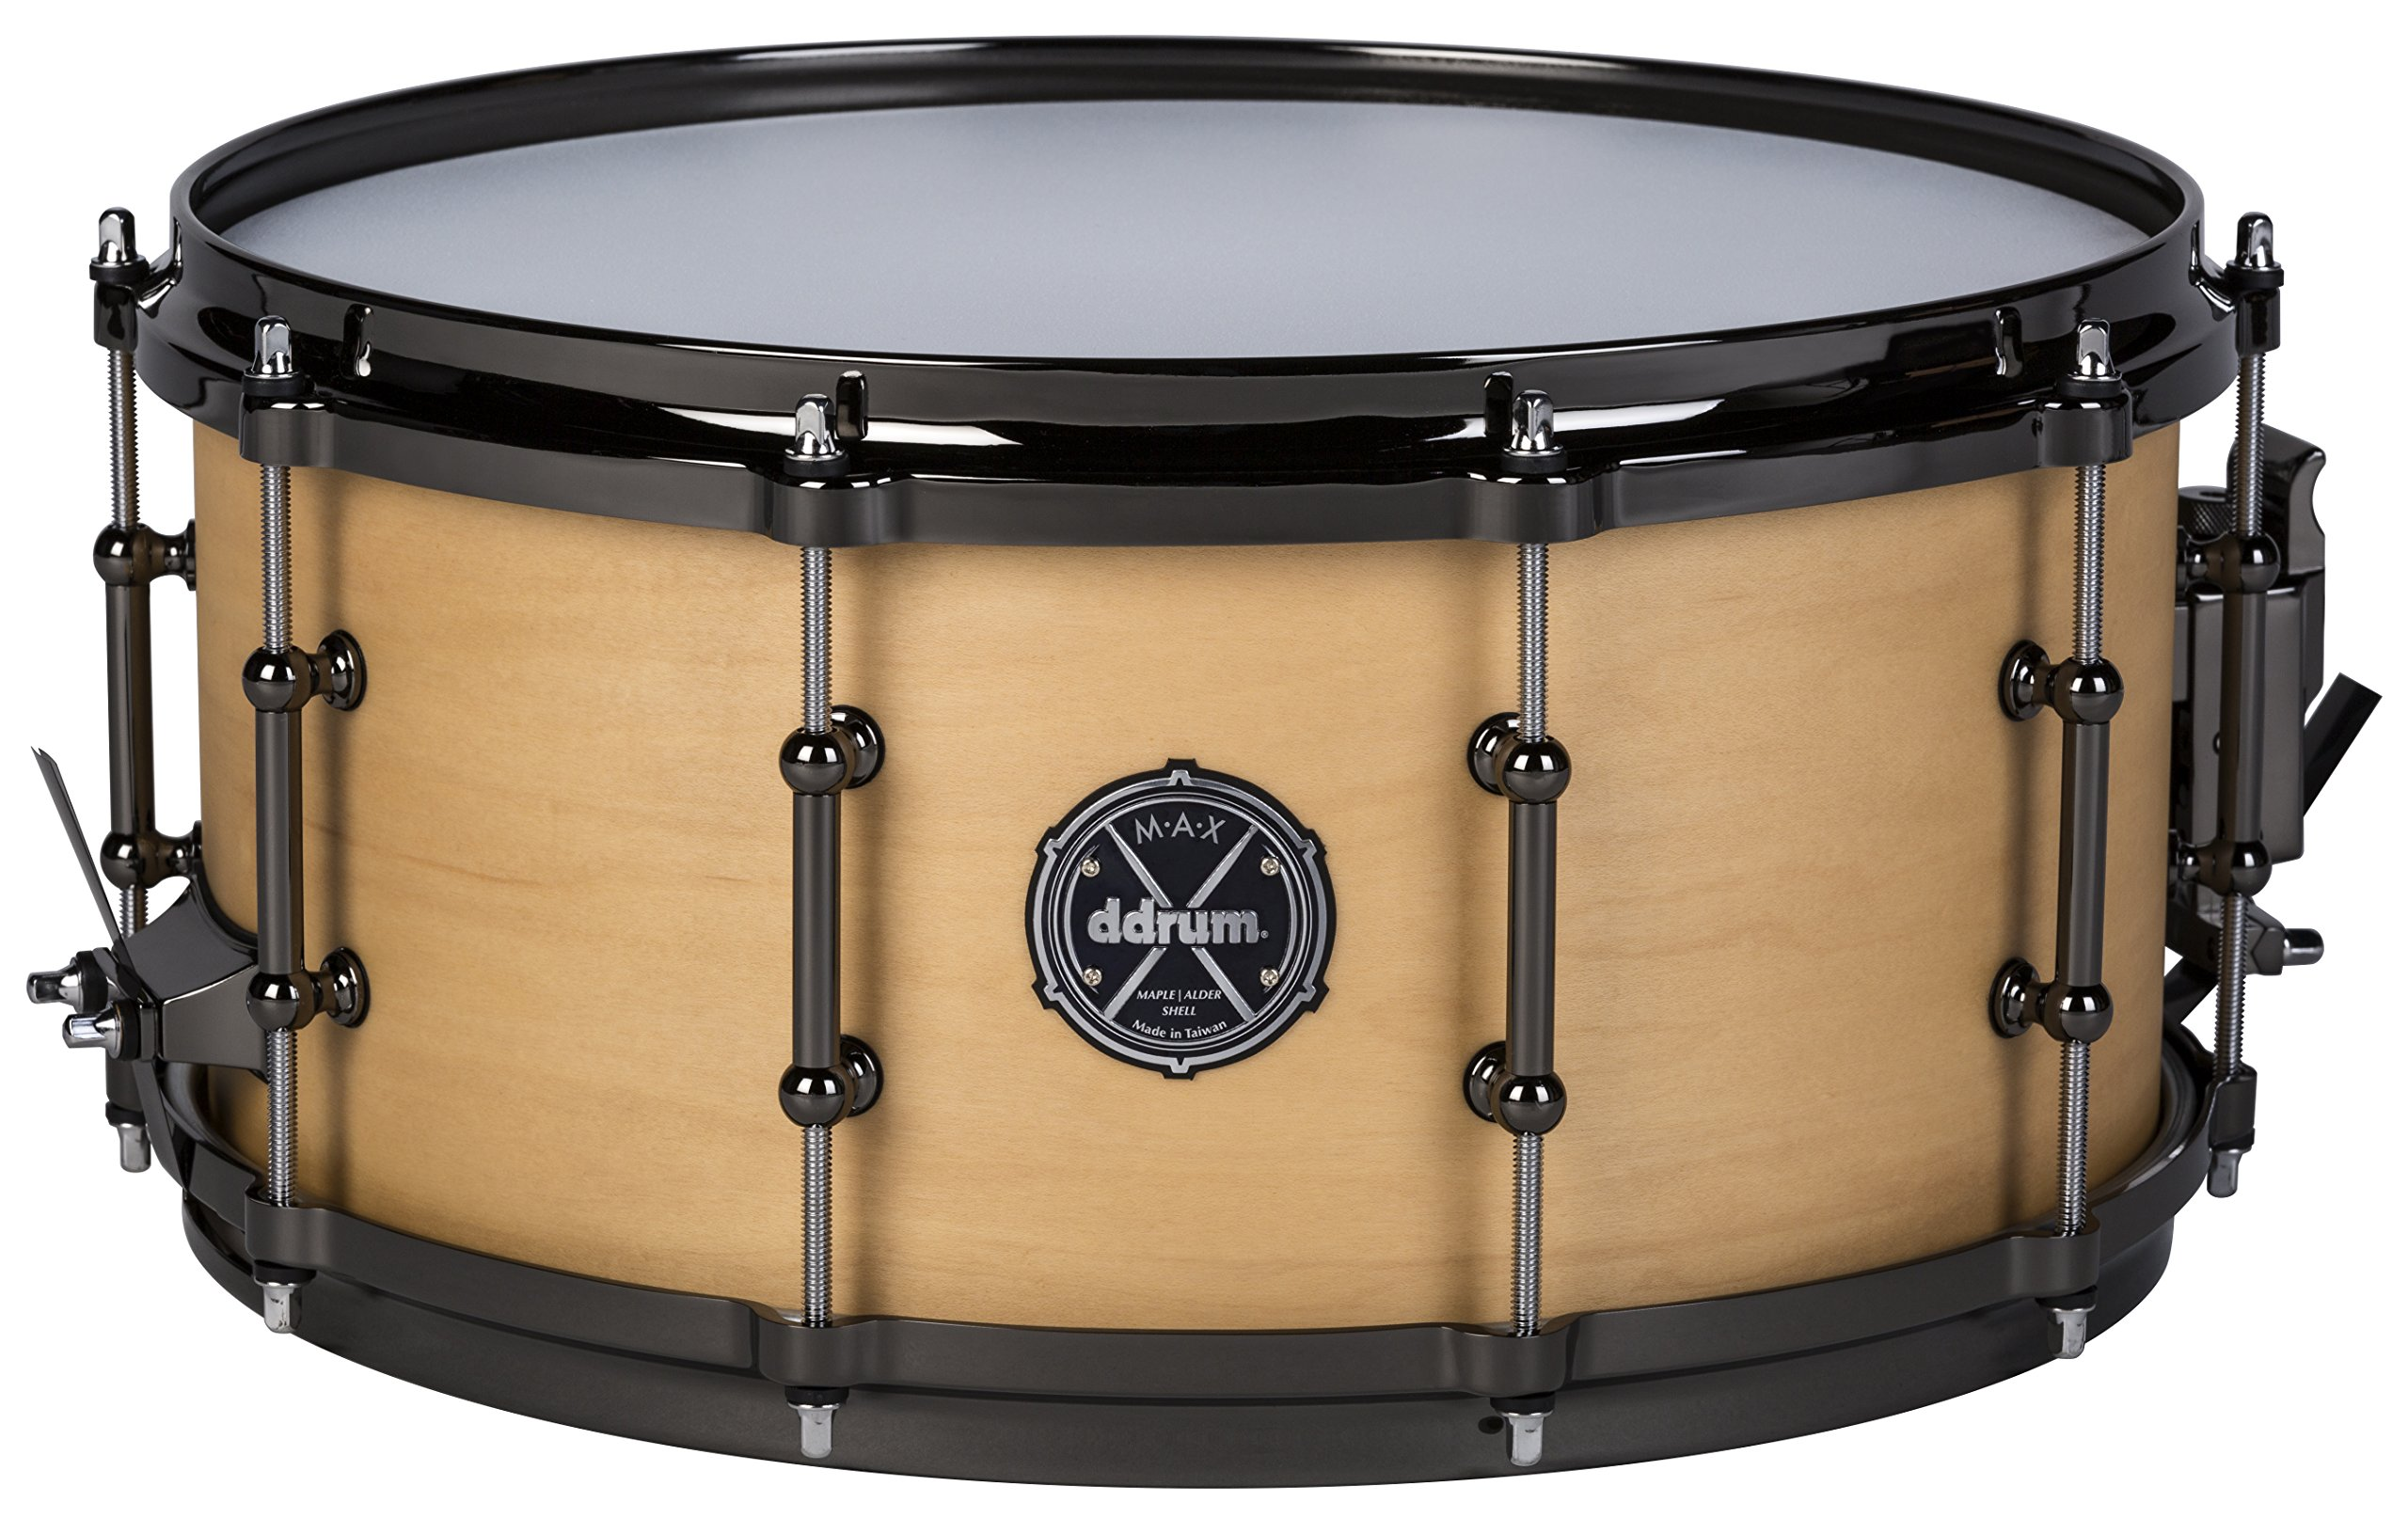 ddrum MAX Series 6.5x14 Snare Drum-Satin Natural (MAXSD65X14SN